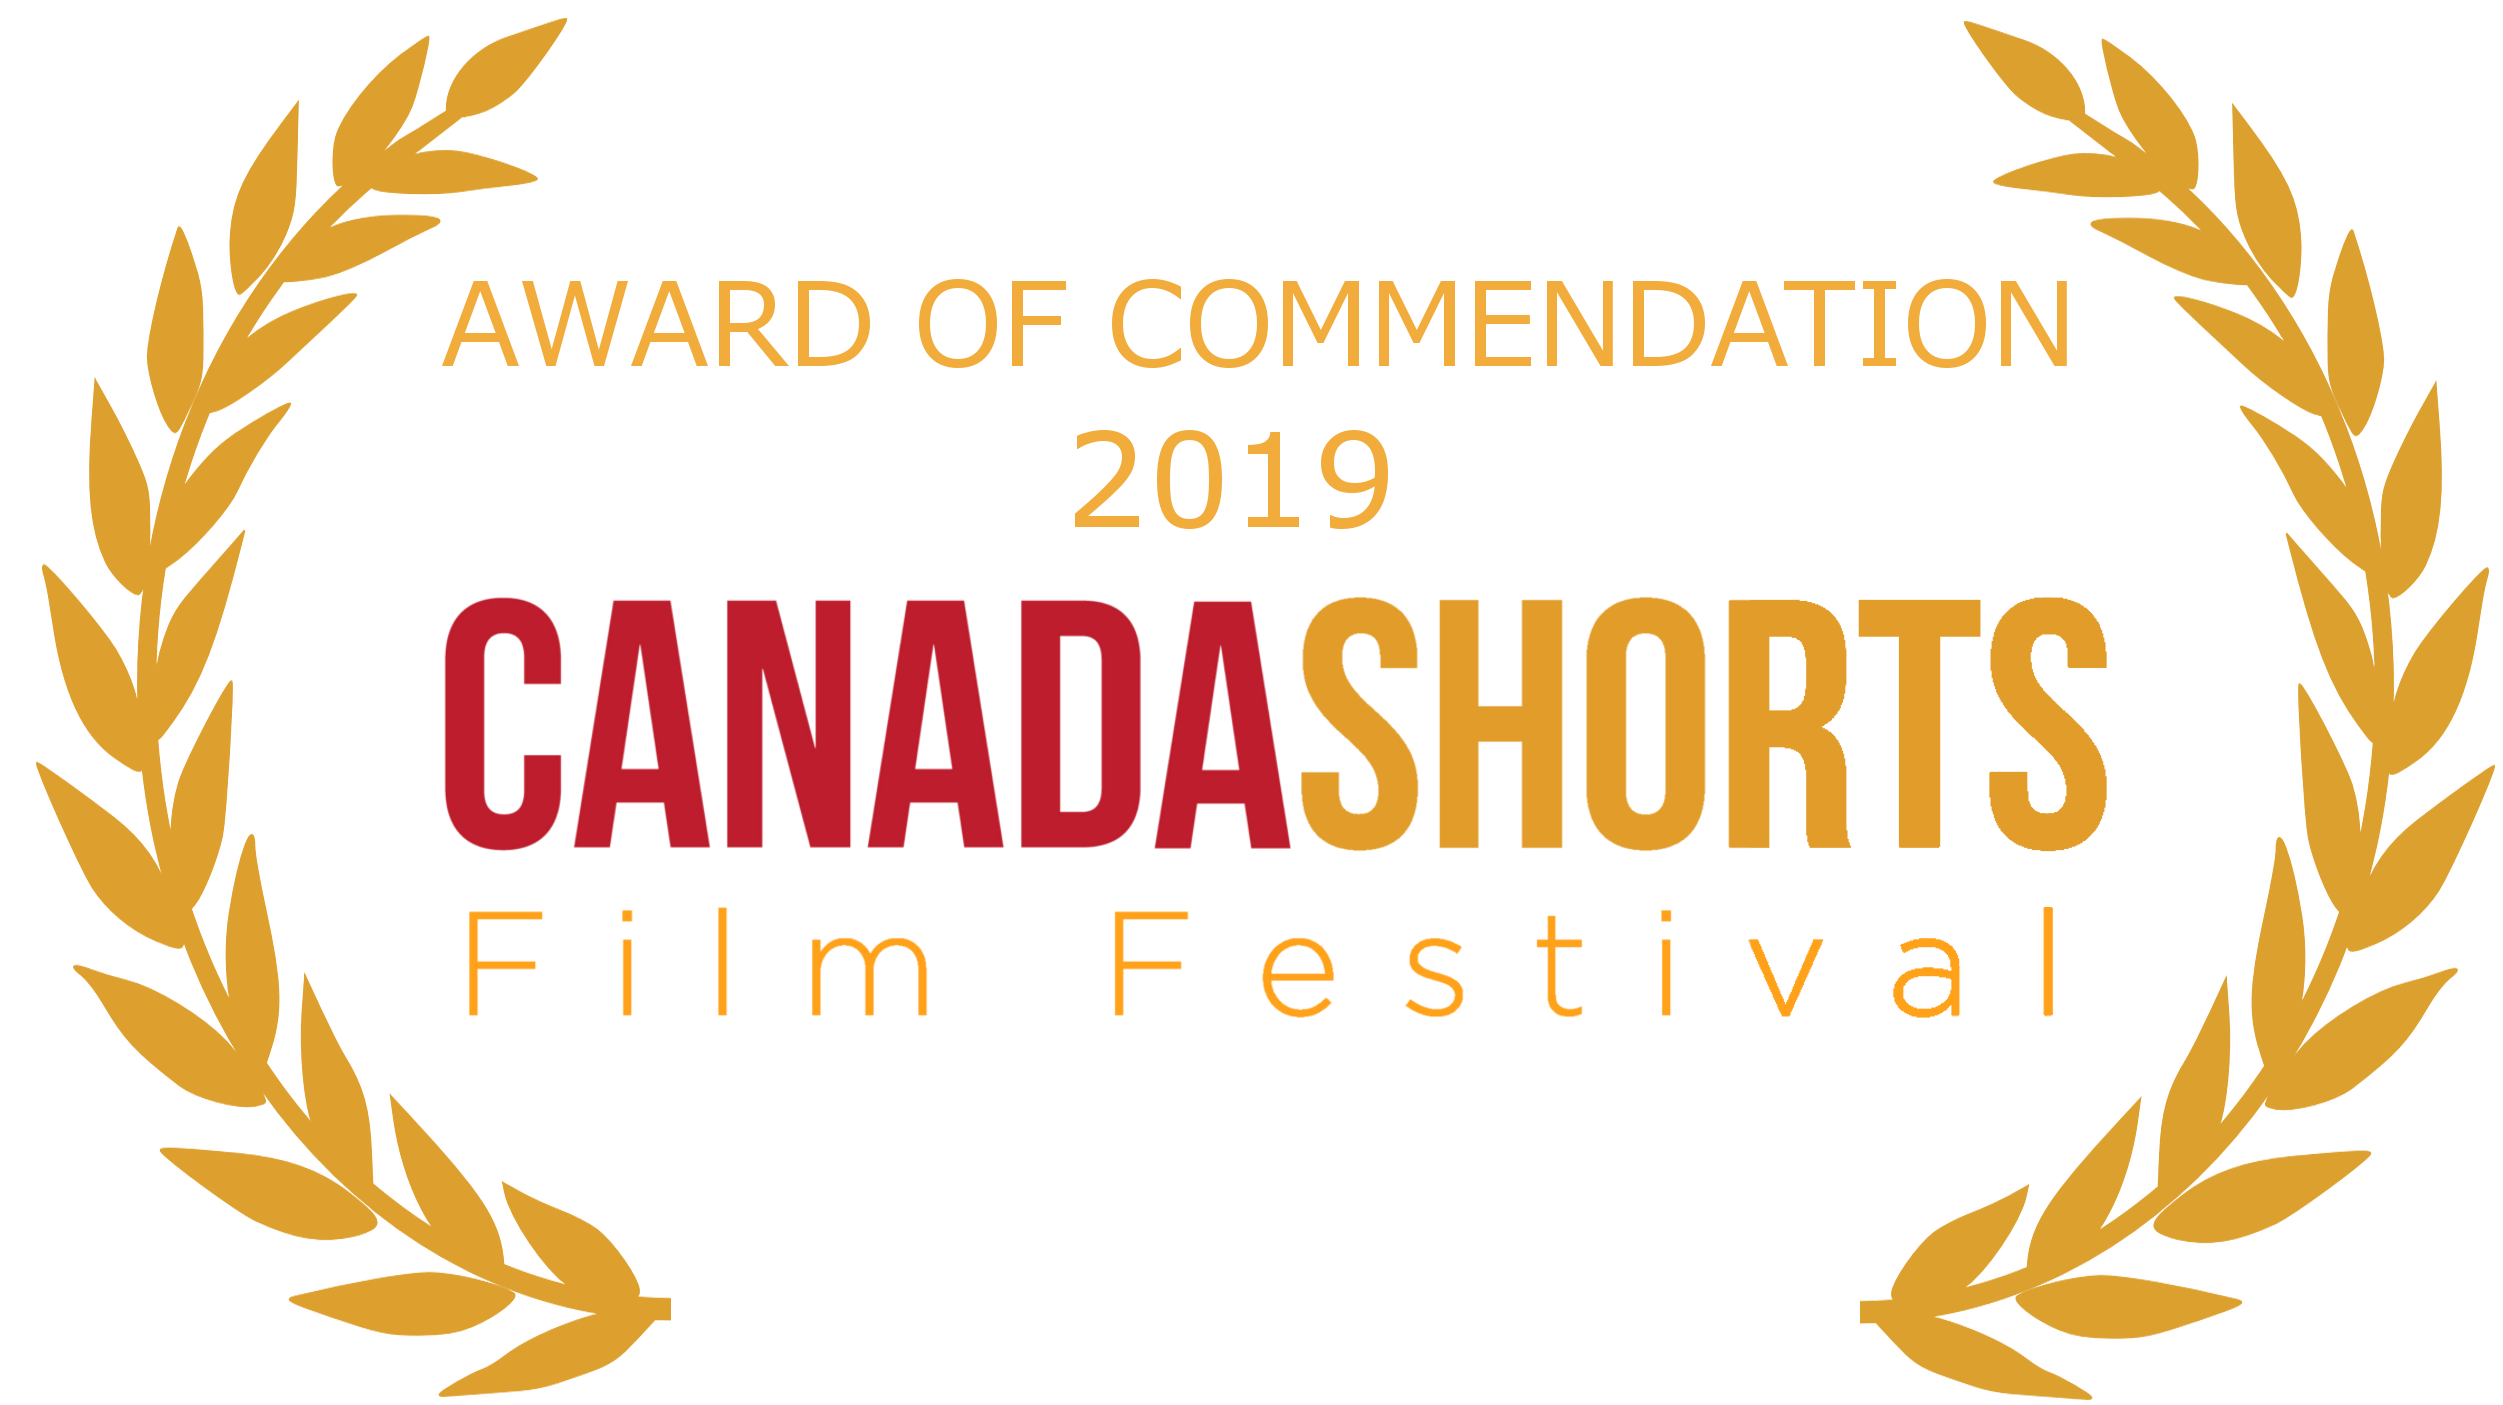 Canada shorts AWARD OF COMMENDATION laurel - gold